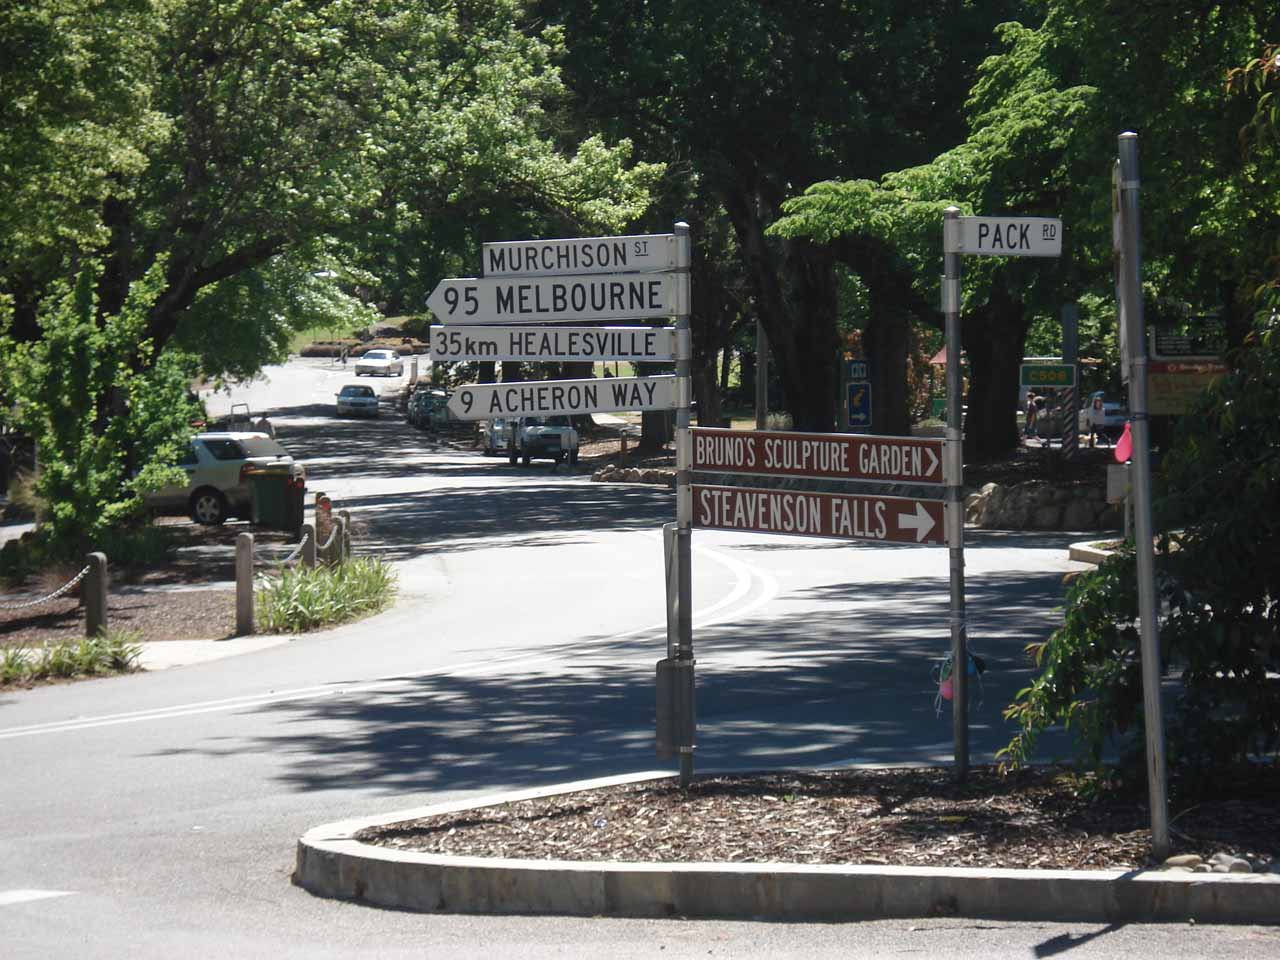 There were plenty of signs pointing the way to Steavenson Falls from the town centre of Marysville at Murchison St and Pack St